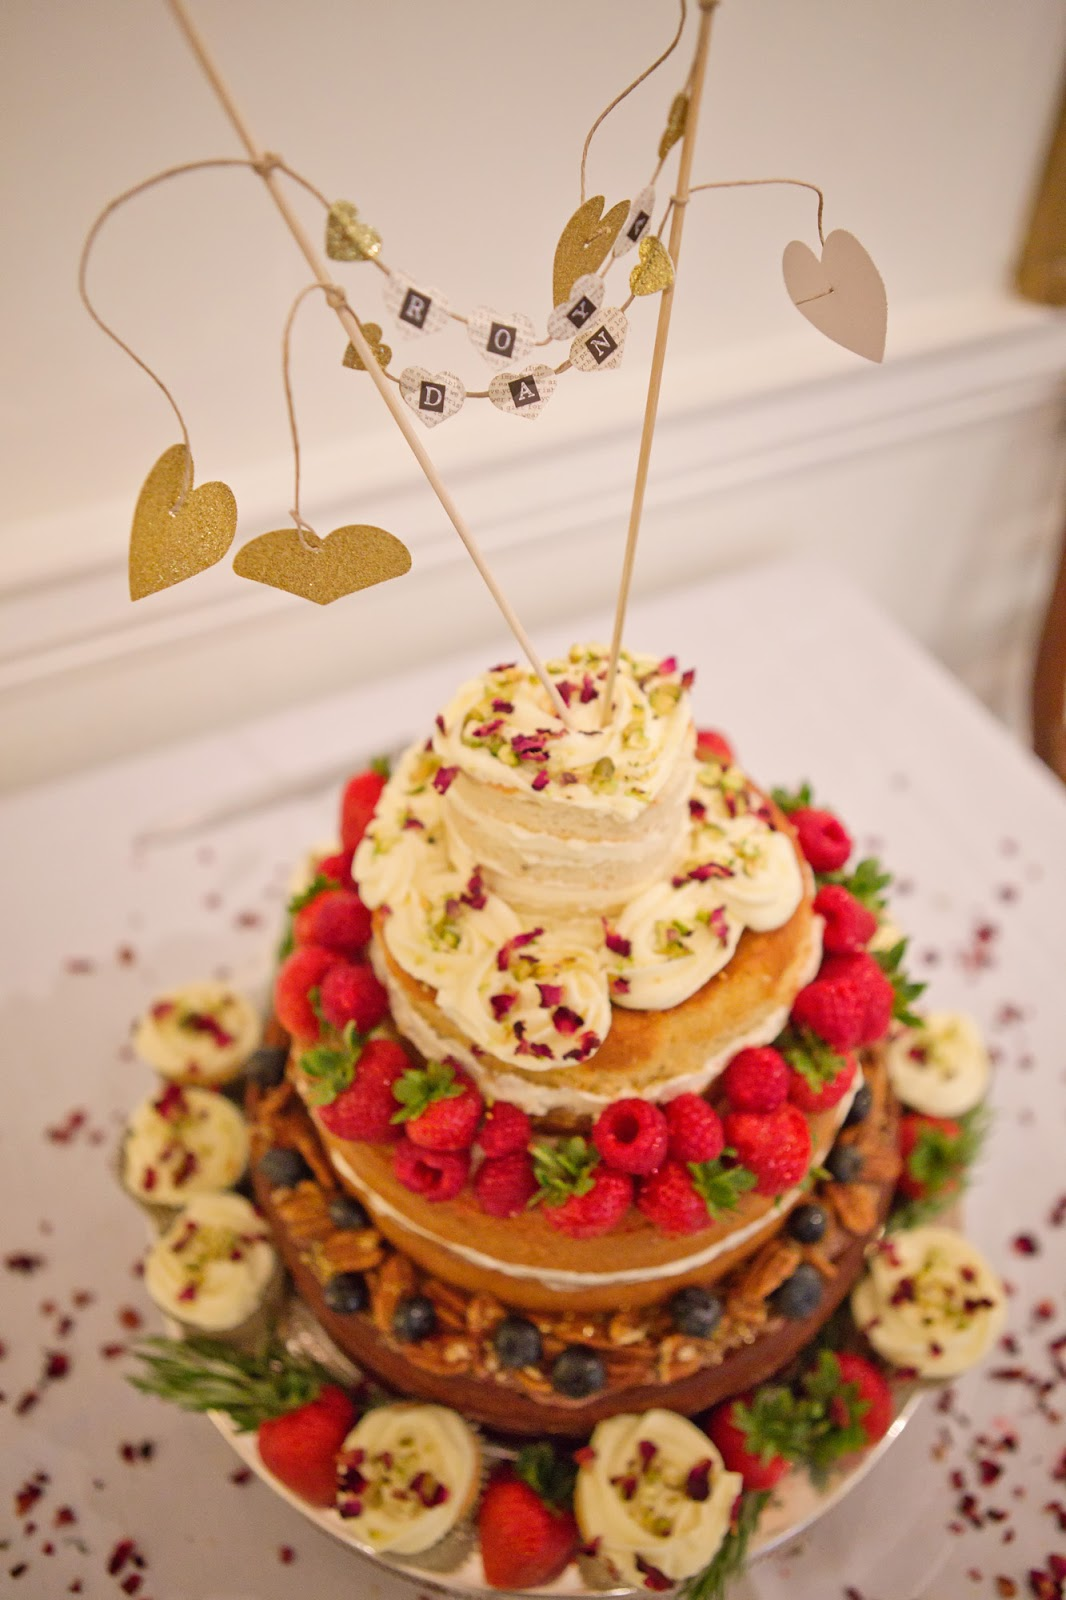 AnnieThing for Food: A Naked Wedding Cake